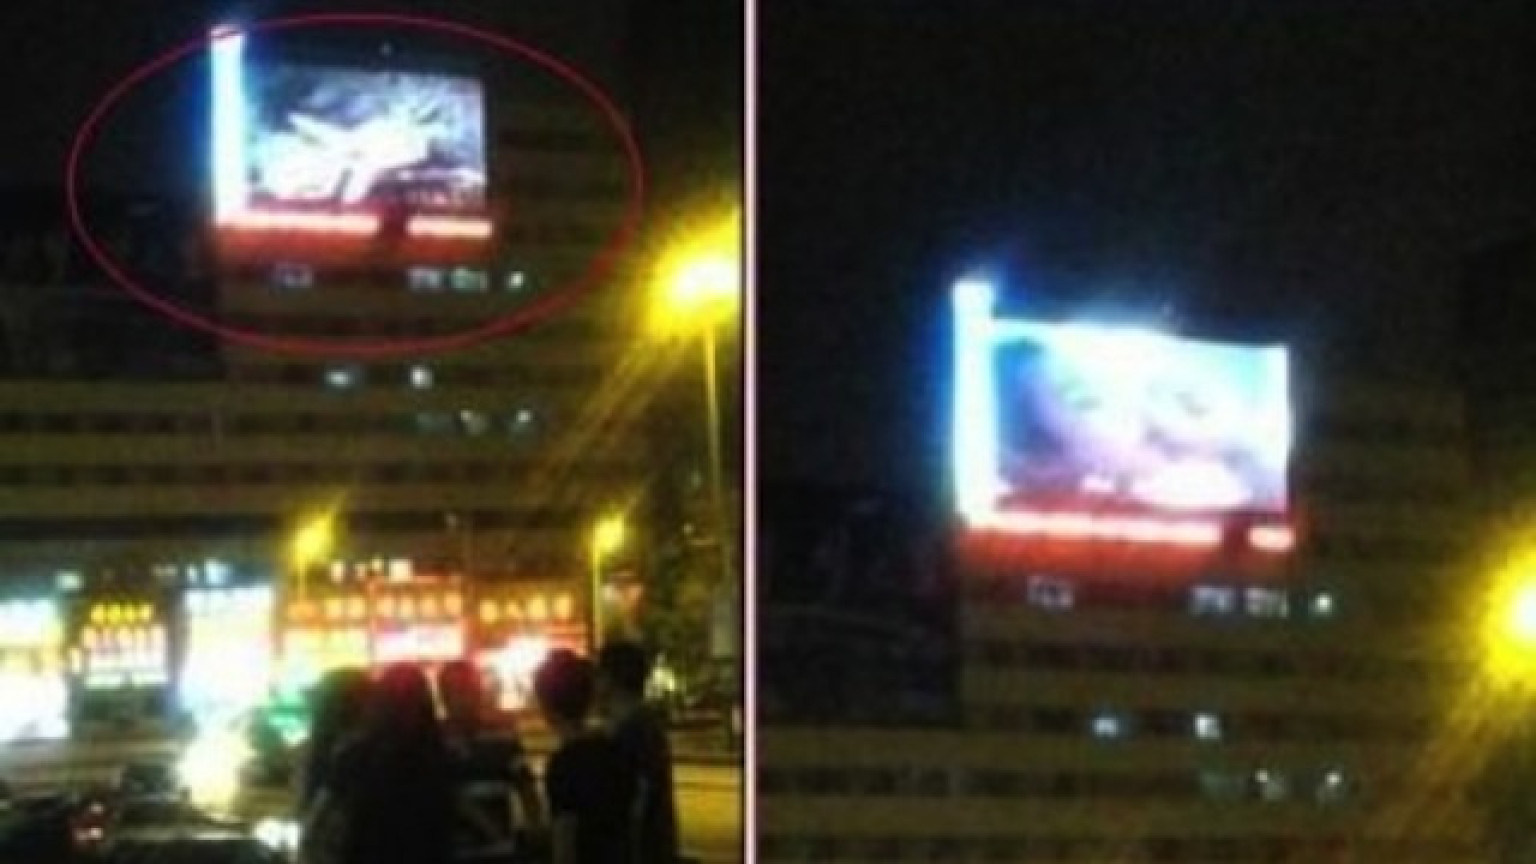 Accidental Public Porn - Chinese Porn Accidentally Broadcast On Enormous, Public LED Screen (PHOTO)  | HuffPost